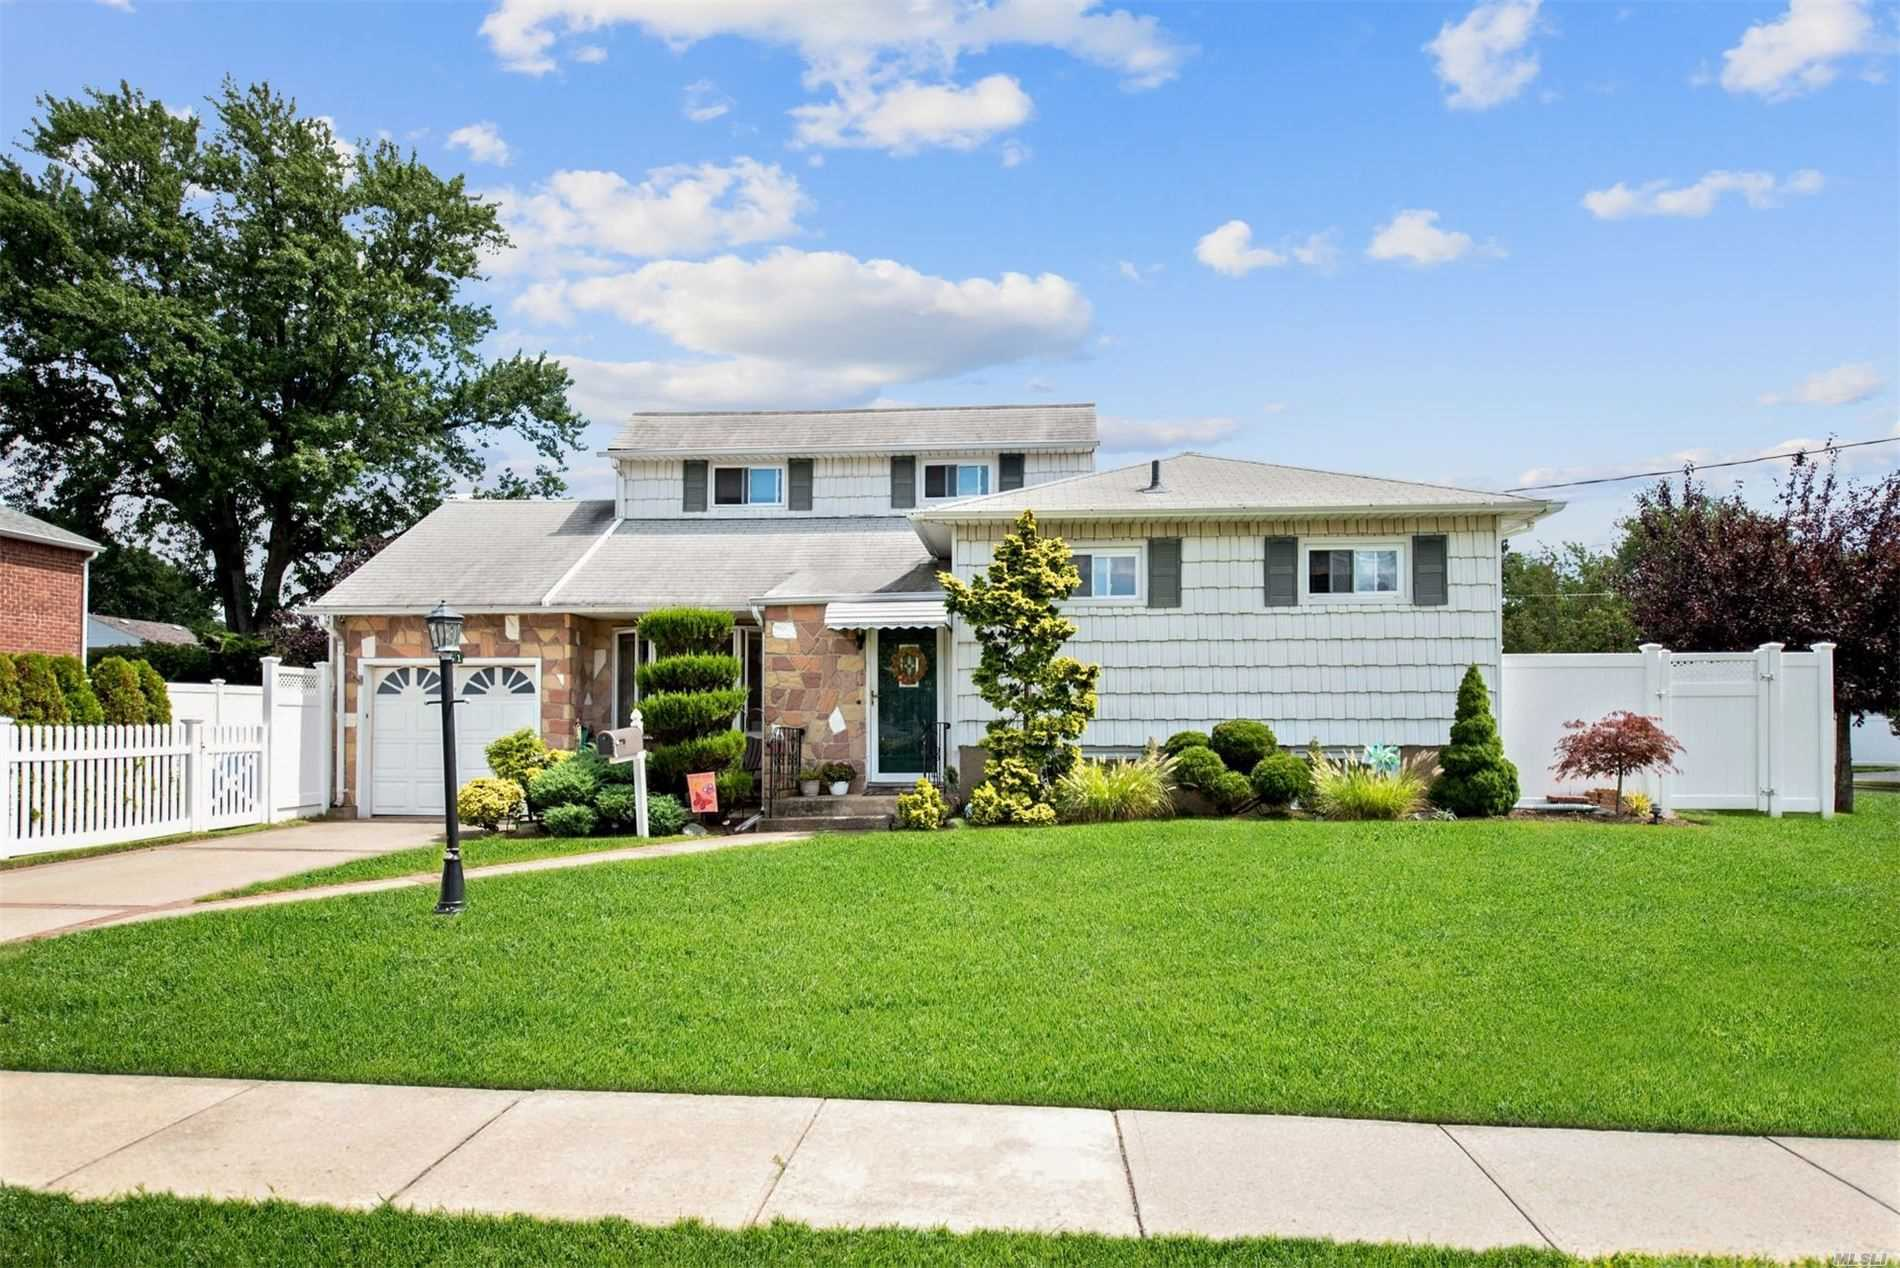 351 1st Ave - Massapequa Park, New York